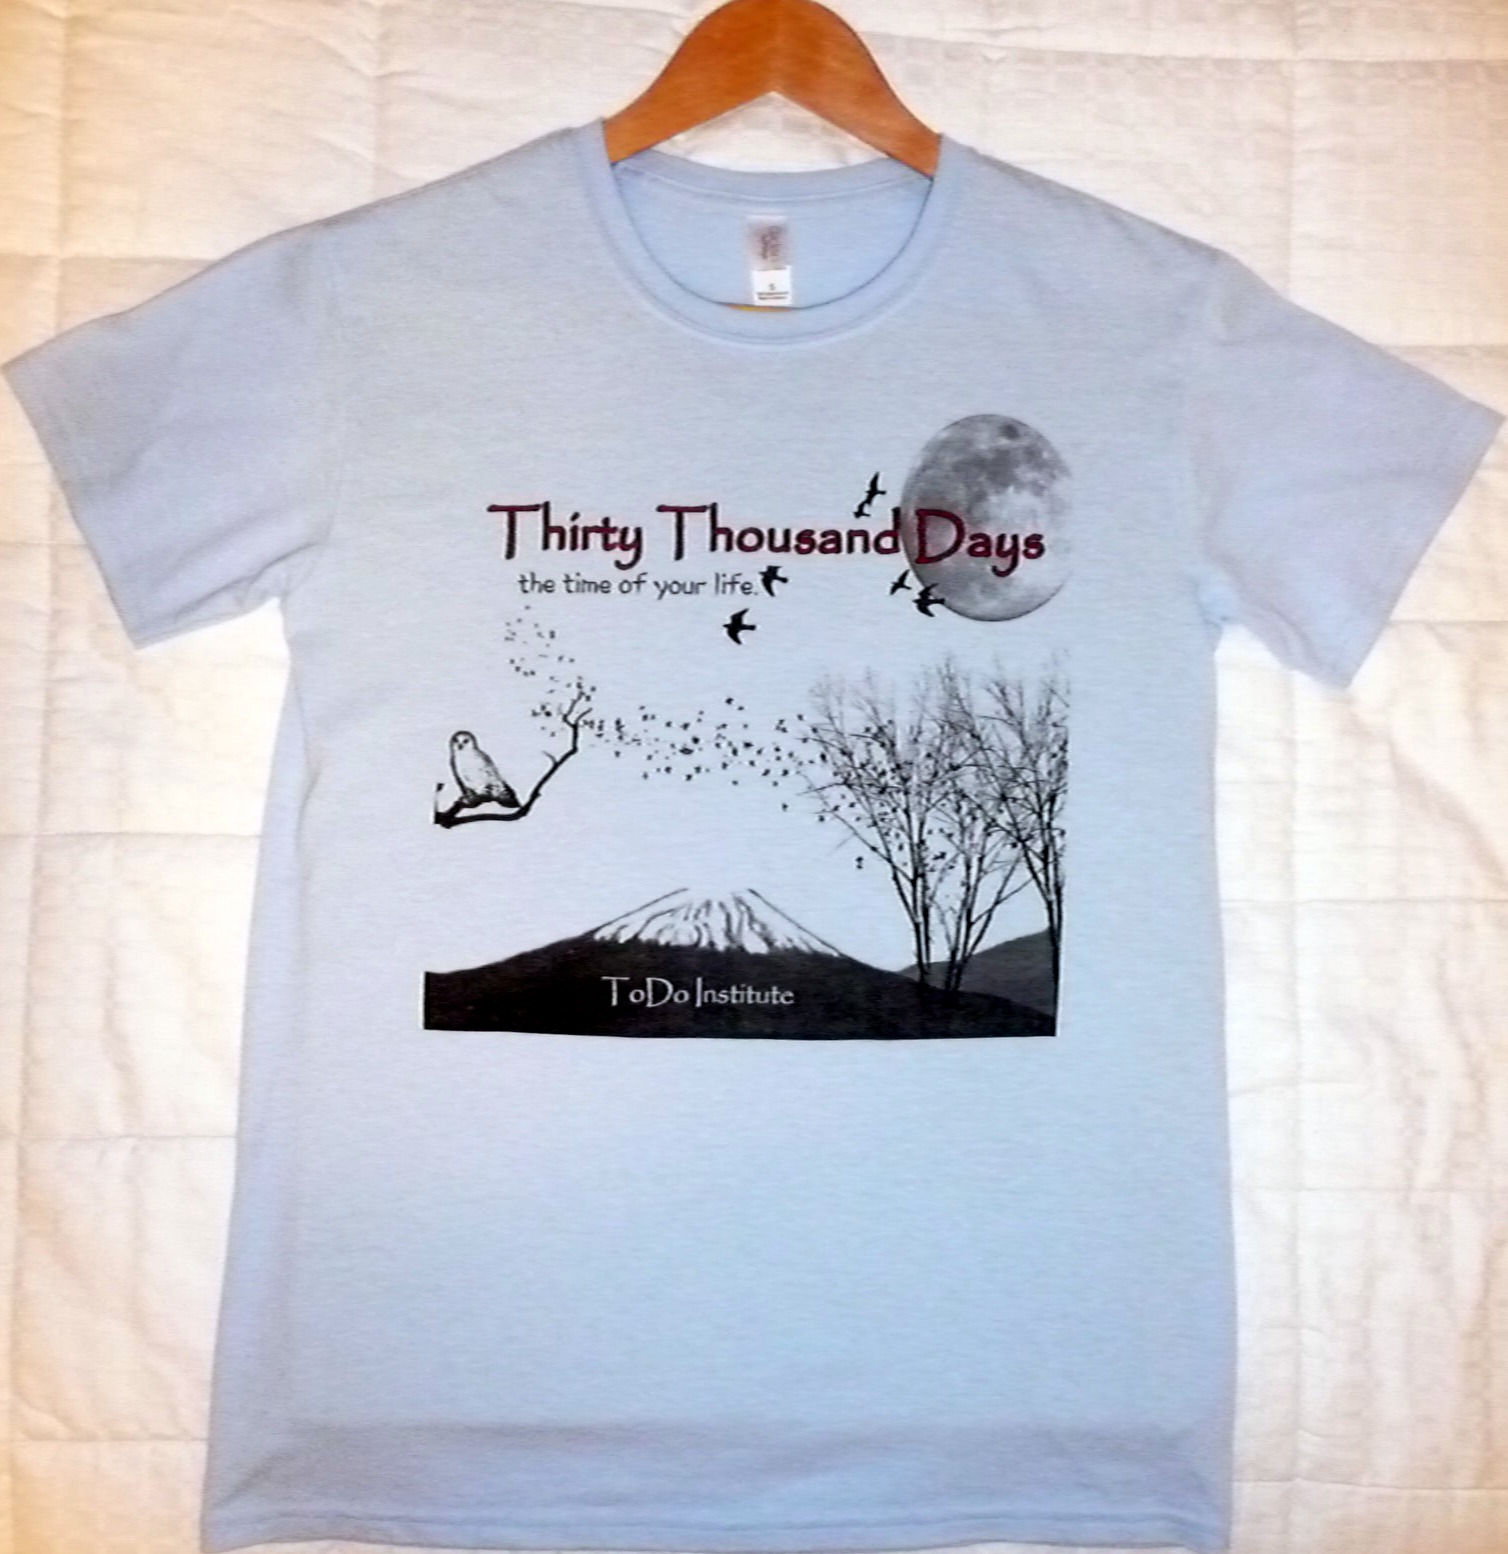 Thirty Thousand Days Soft Cotton T-Shirt - Regularly $12